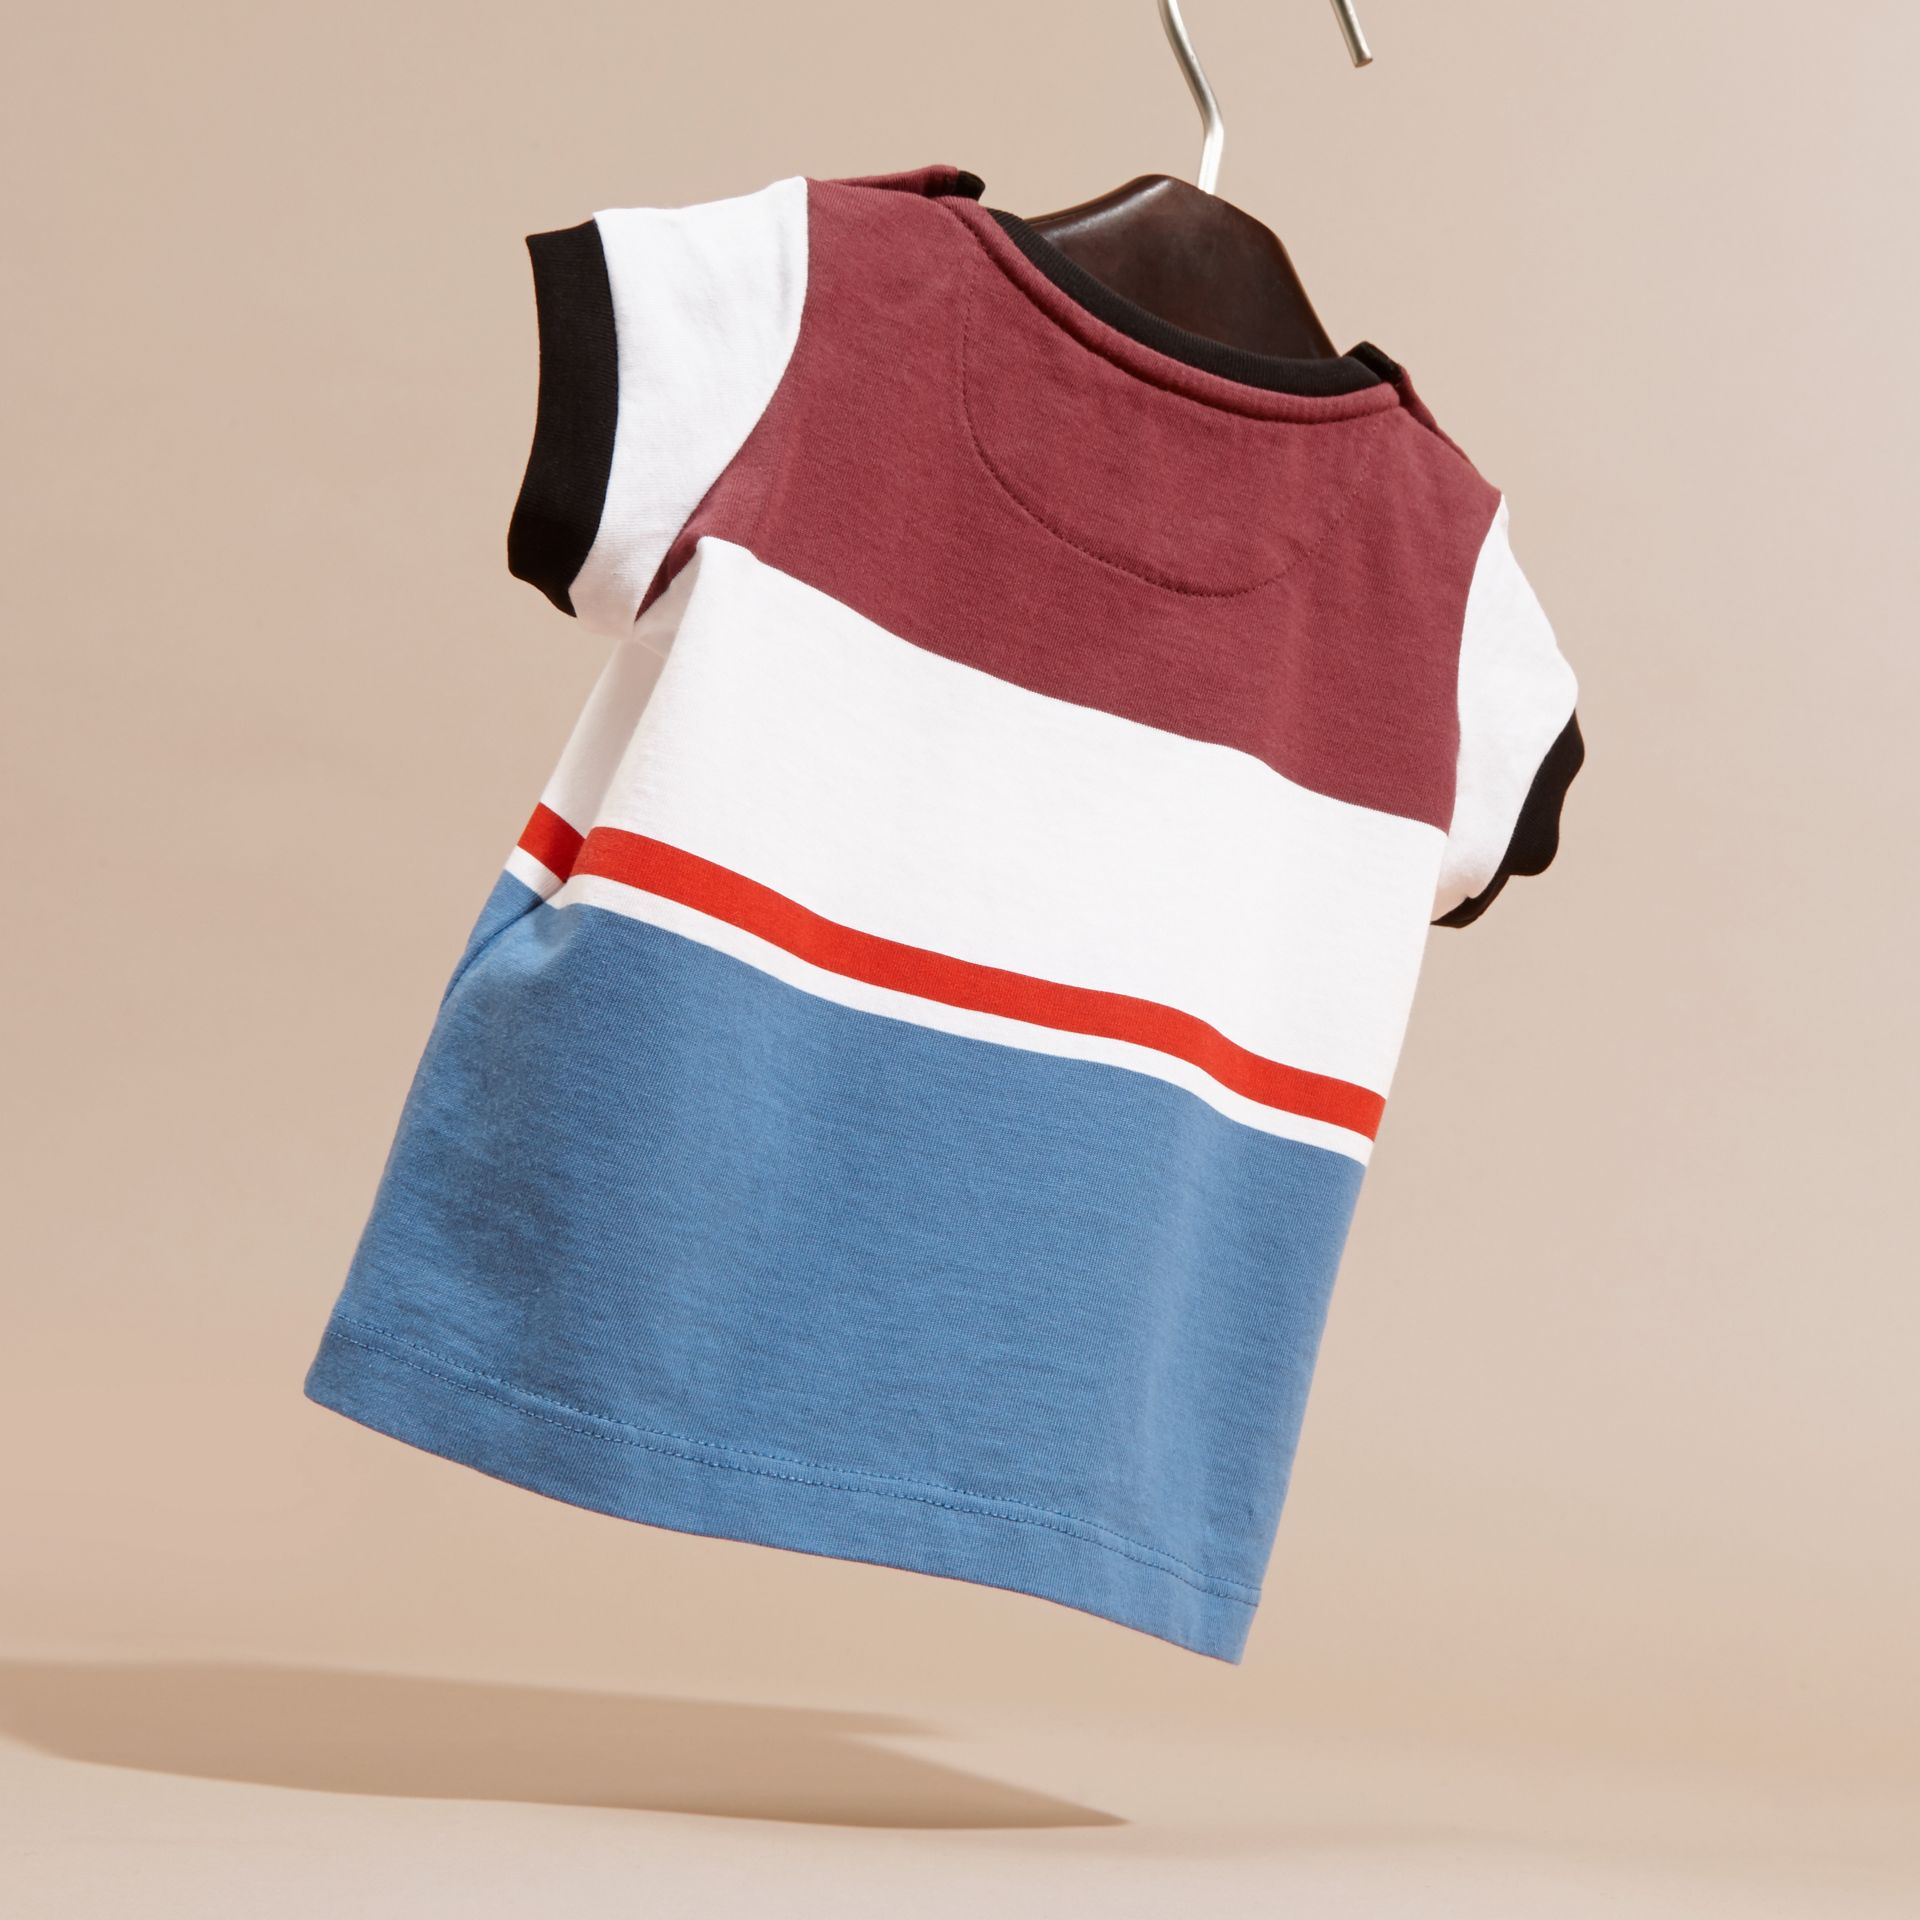 Claret Multi Stripe Cotton T-shirt Claret - gallery image 4